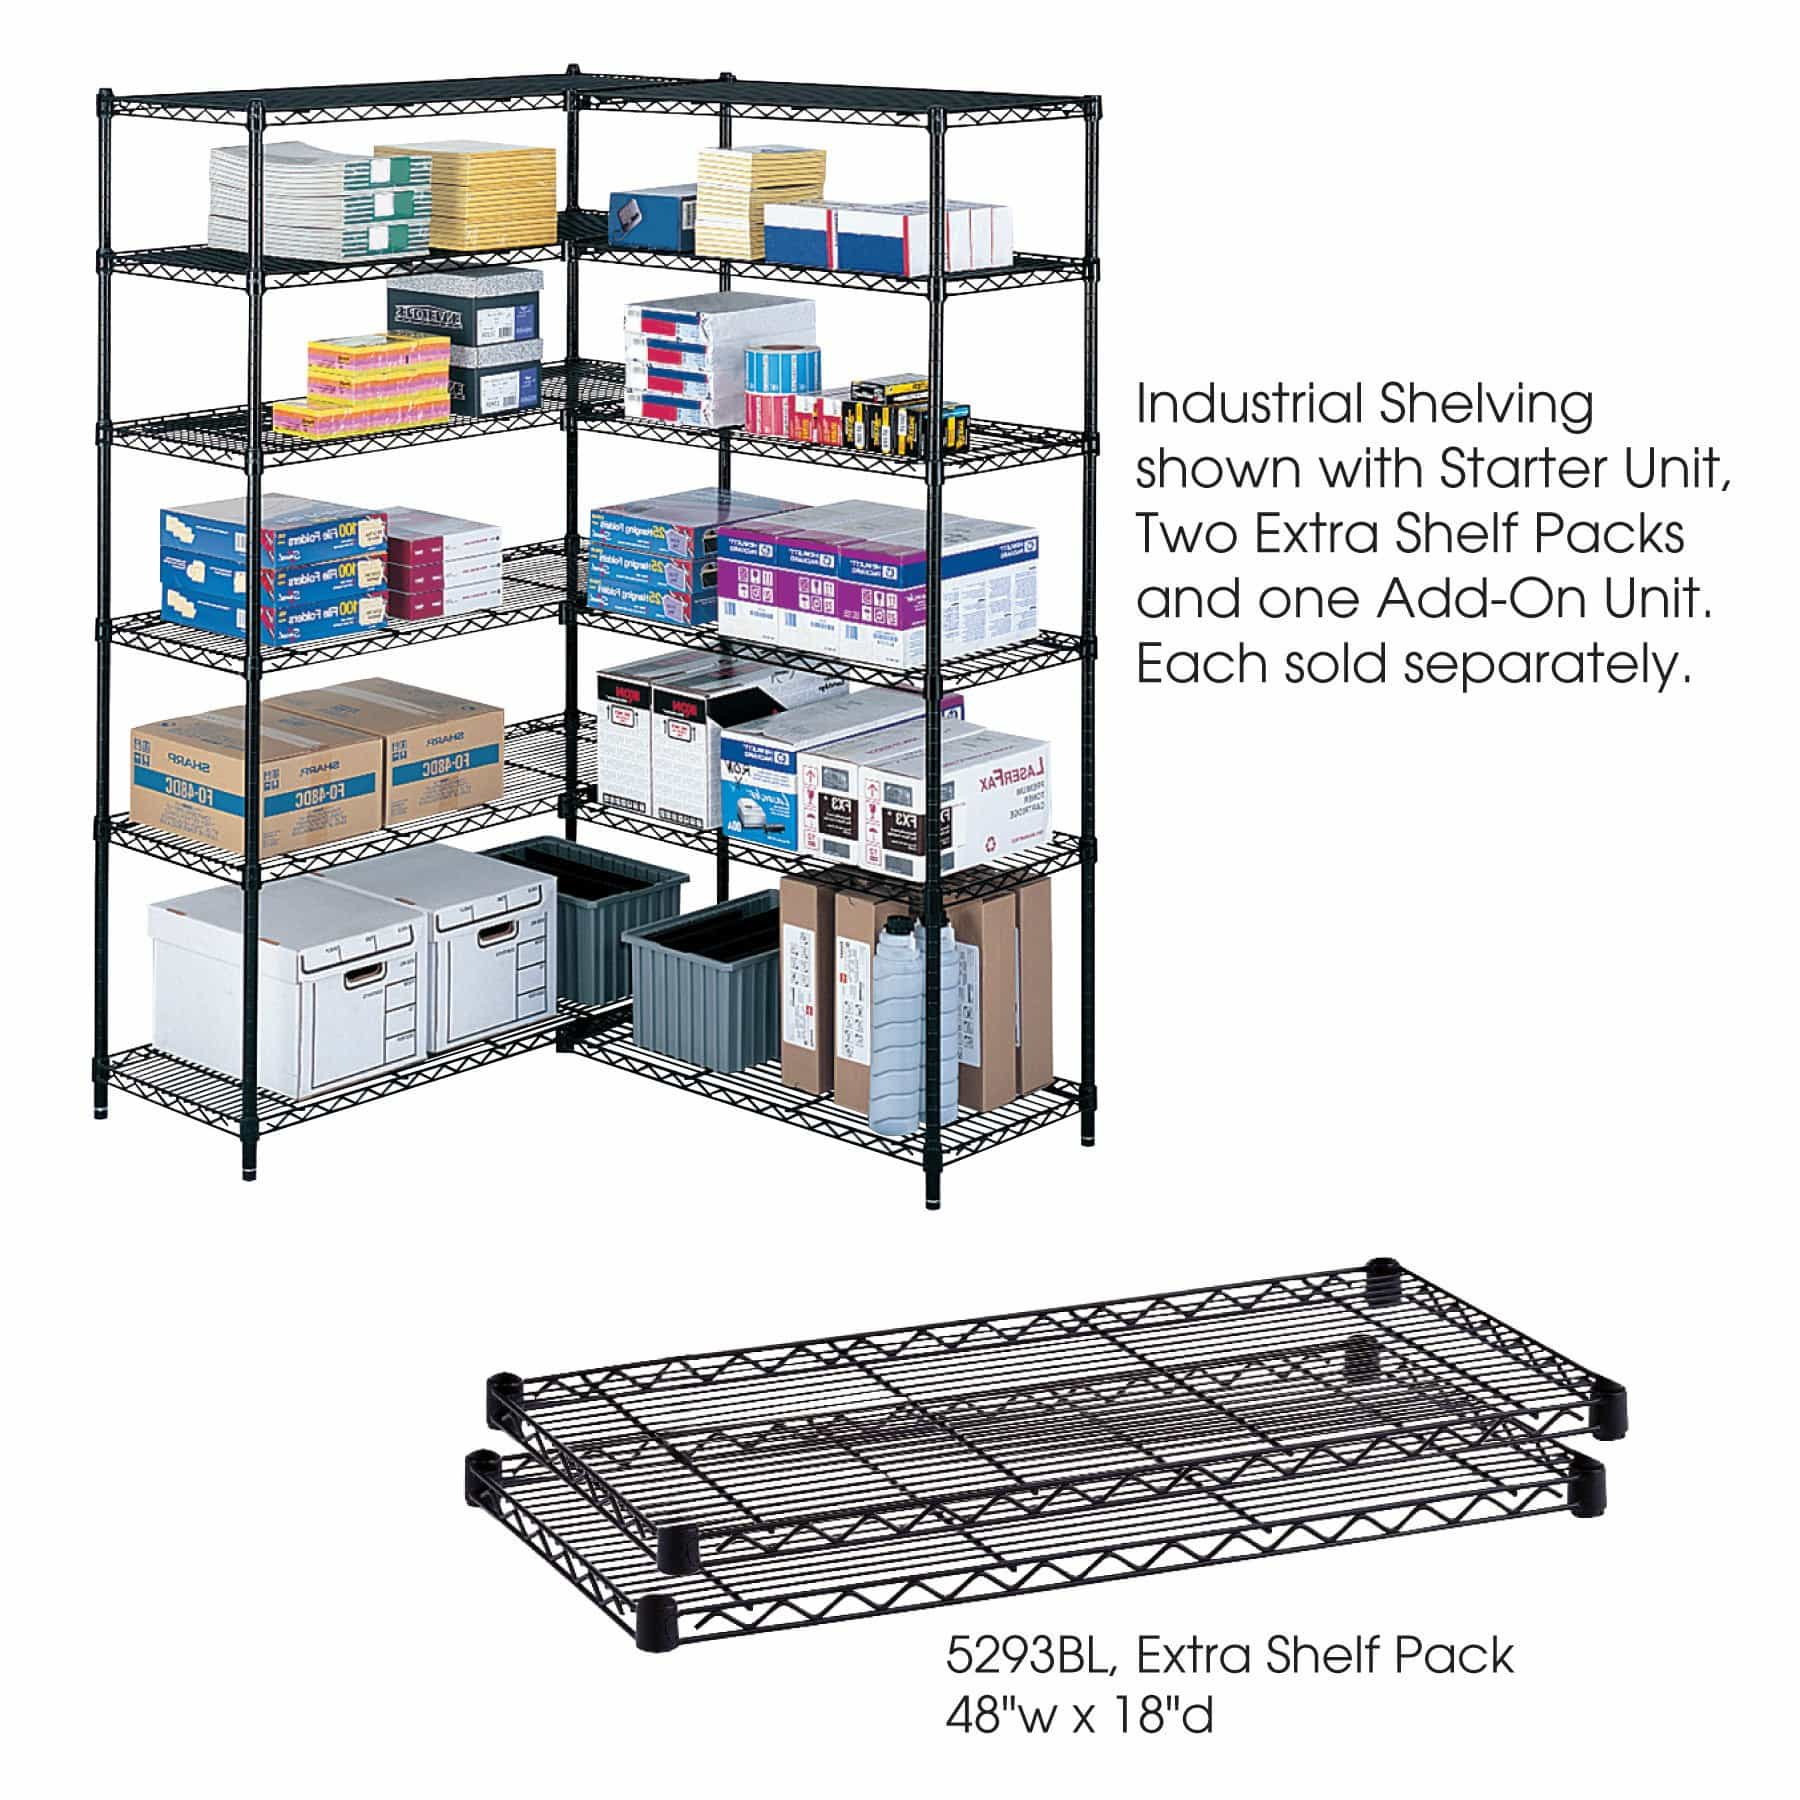 bedinhome - Industrial 48 In x 18 In extra strength powder coat finish storage Shelf Pack - Safco - Wire Shelving